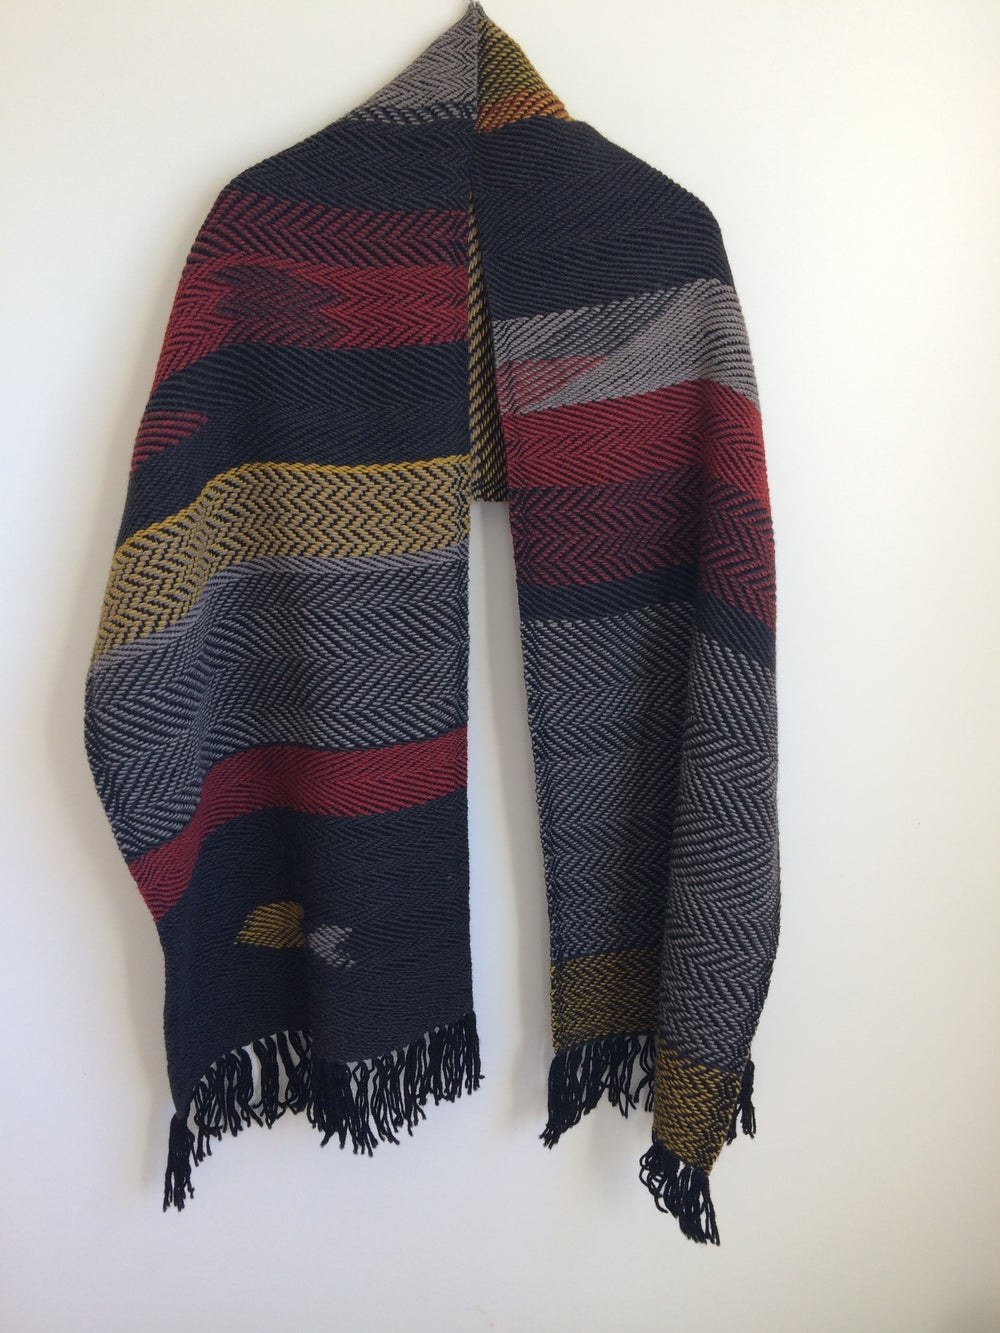 Image of Custom Patterned Woven Shawls + Scarves // MADE TO ORDER